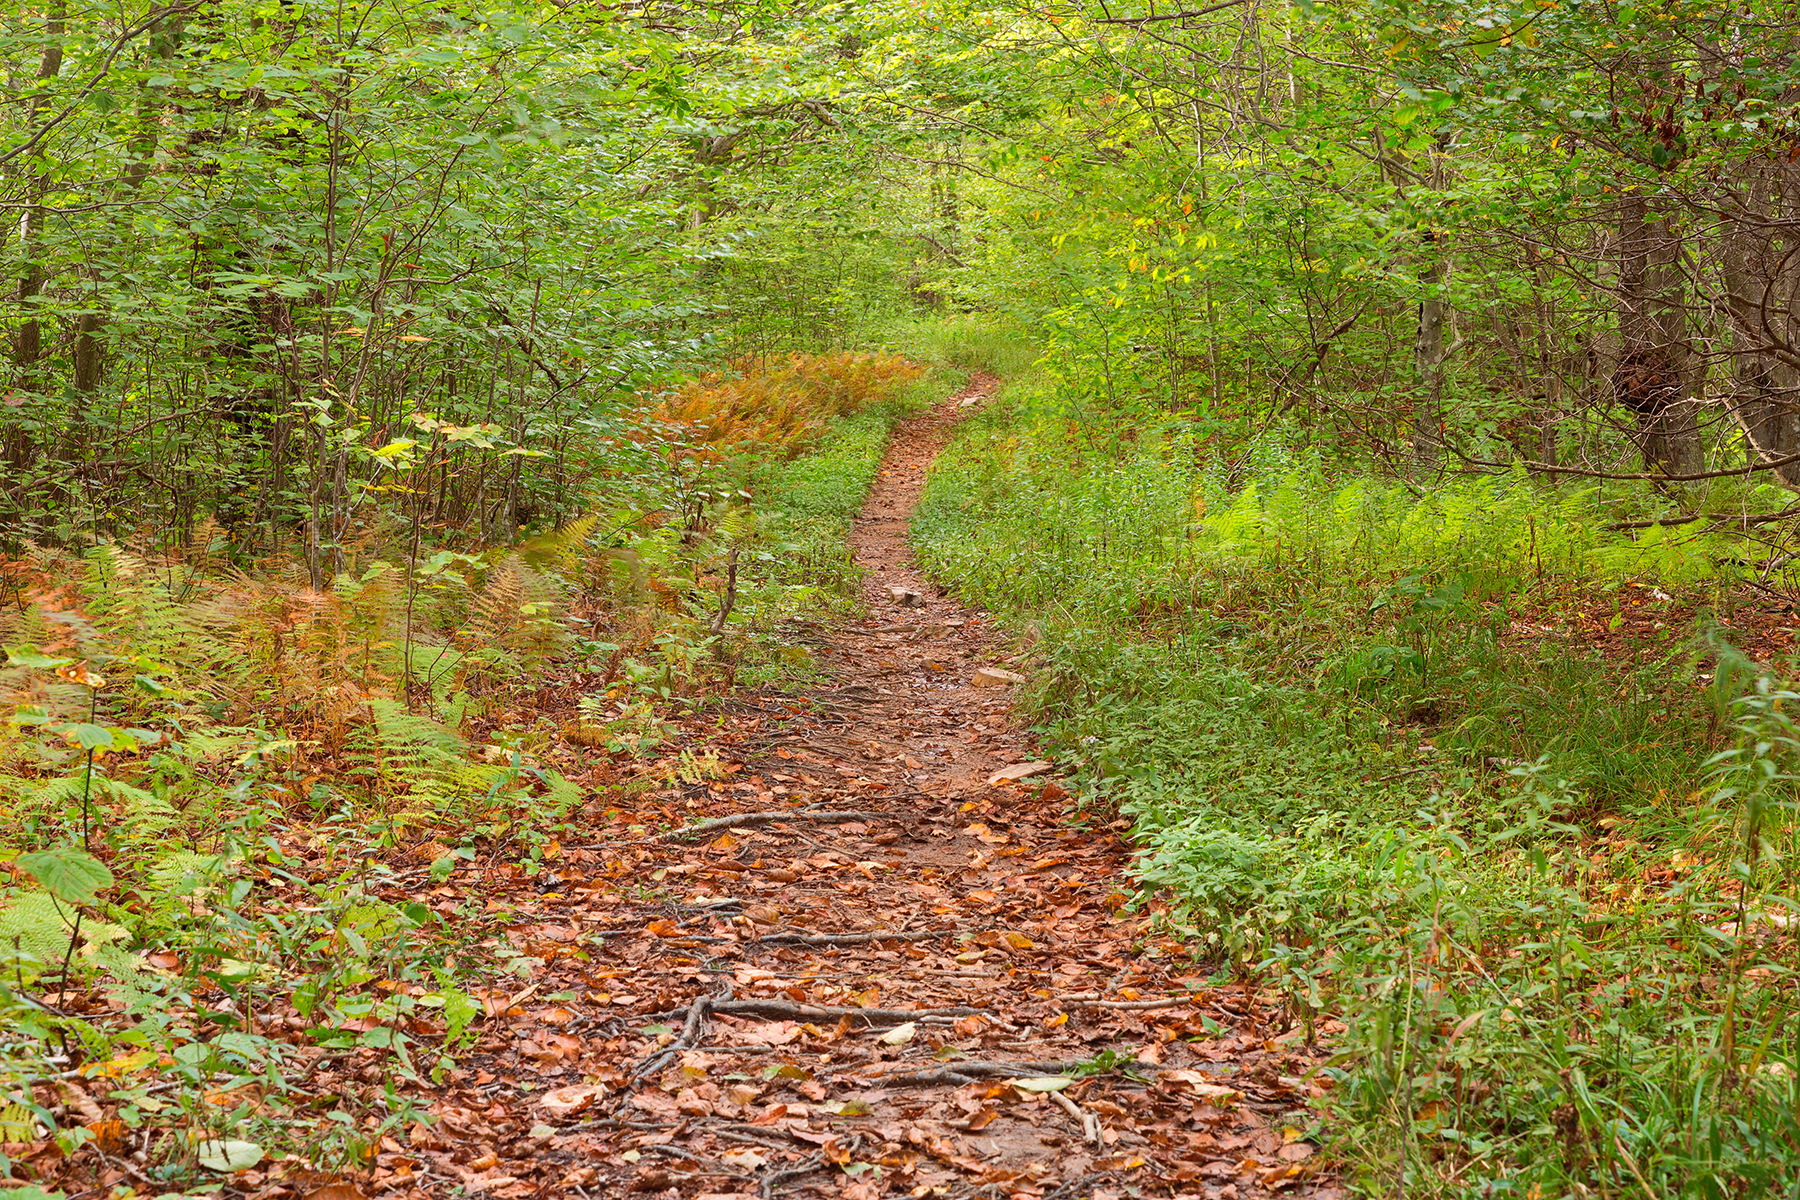 Dolly sods wildlife forest trail photo